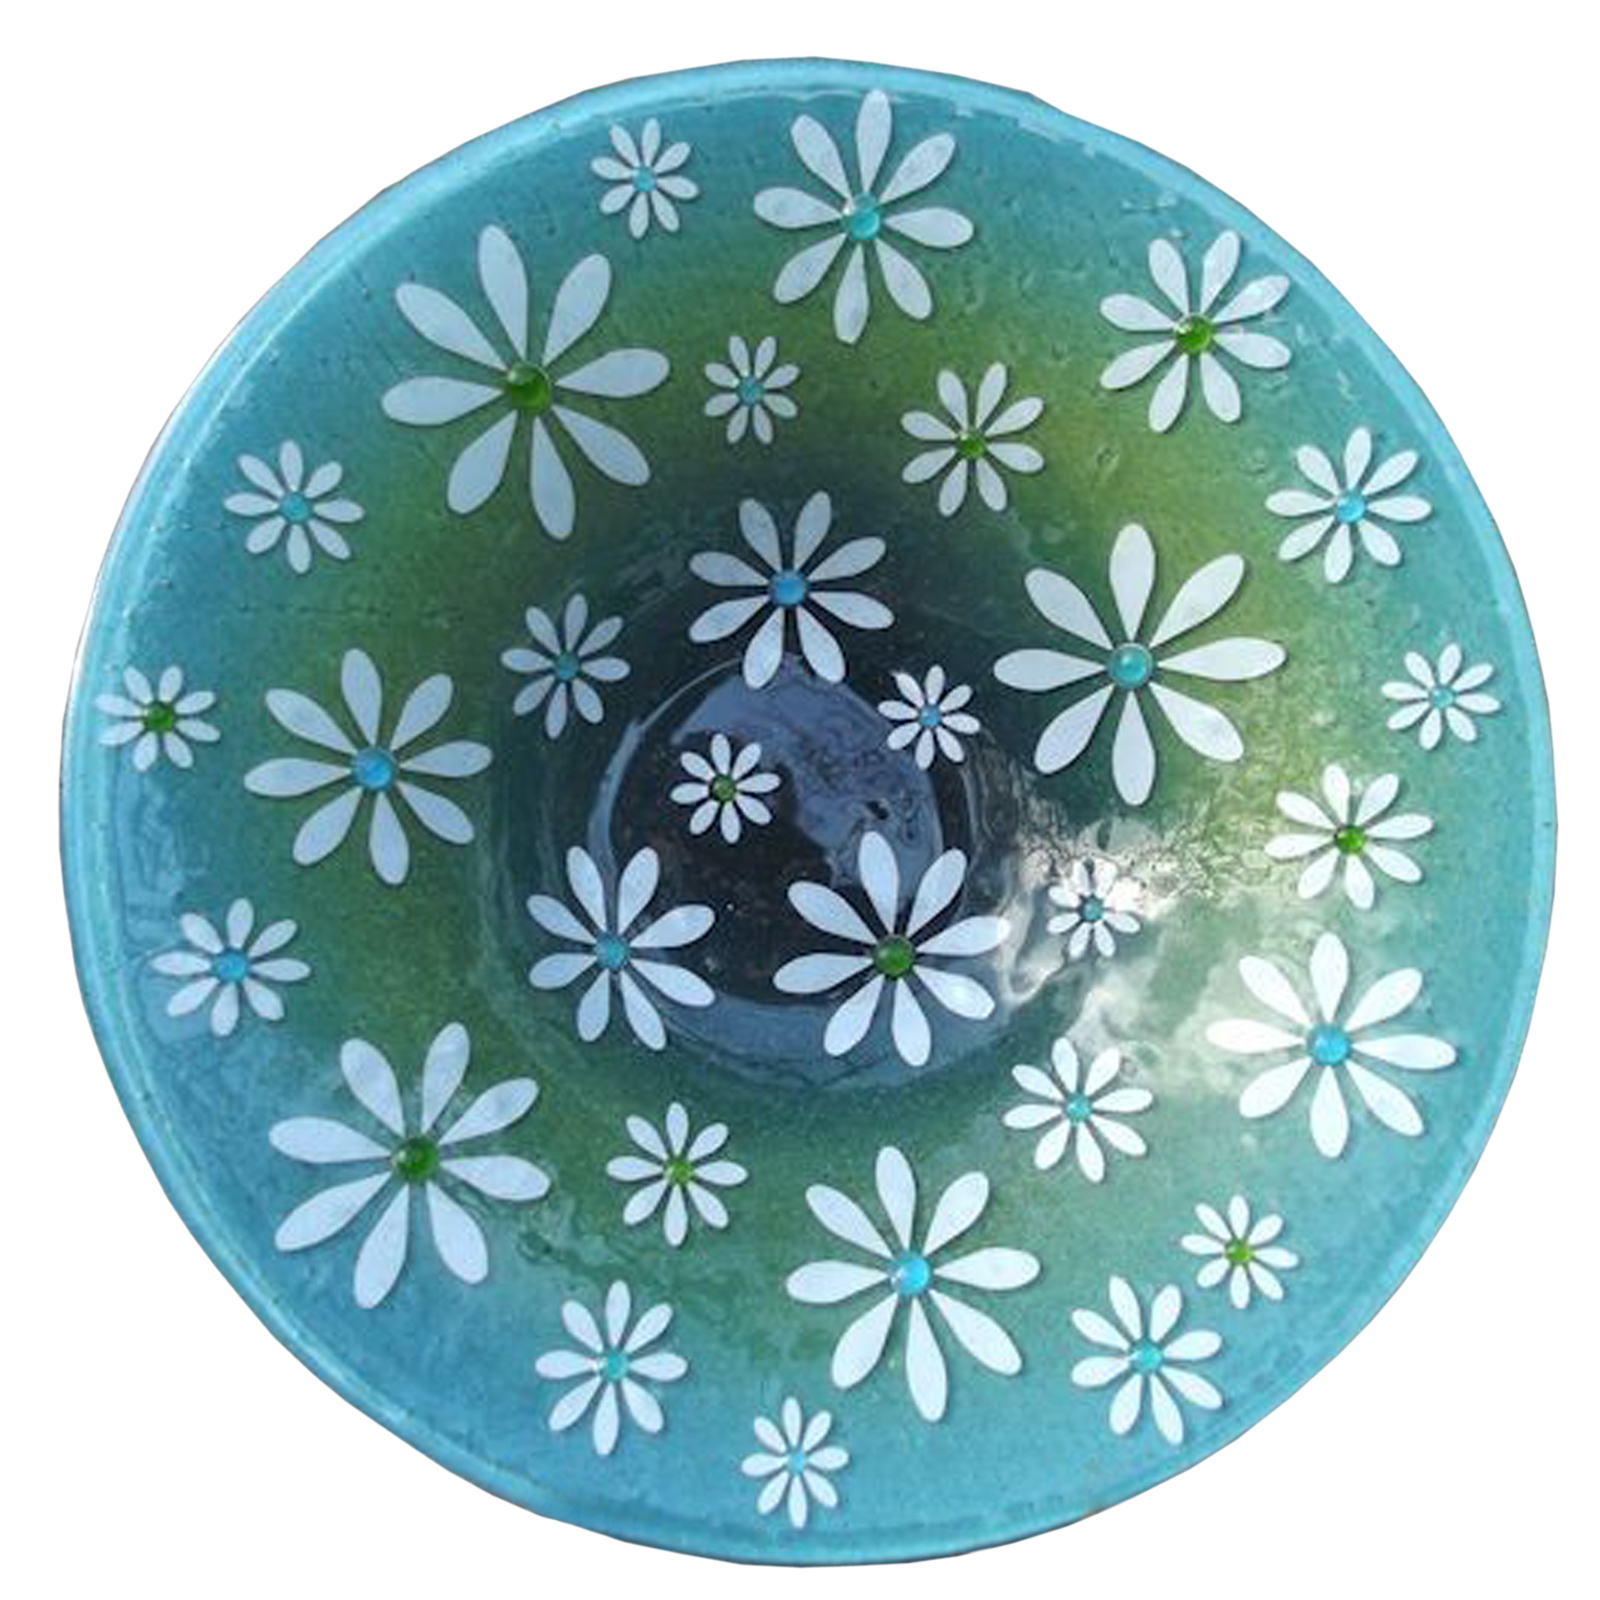 Daisy Meadow Fused Glass Bowl by Beserks Glass